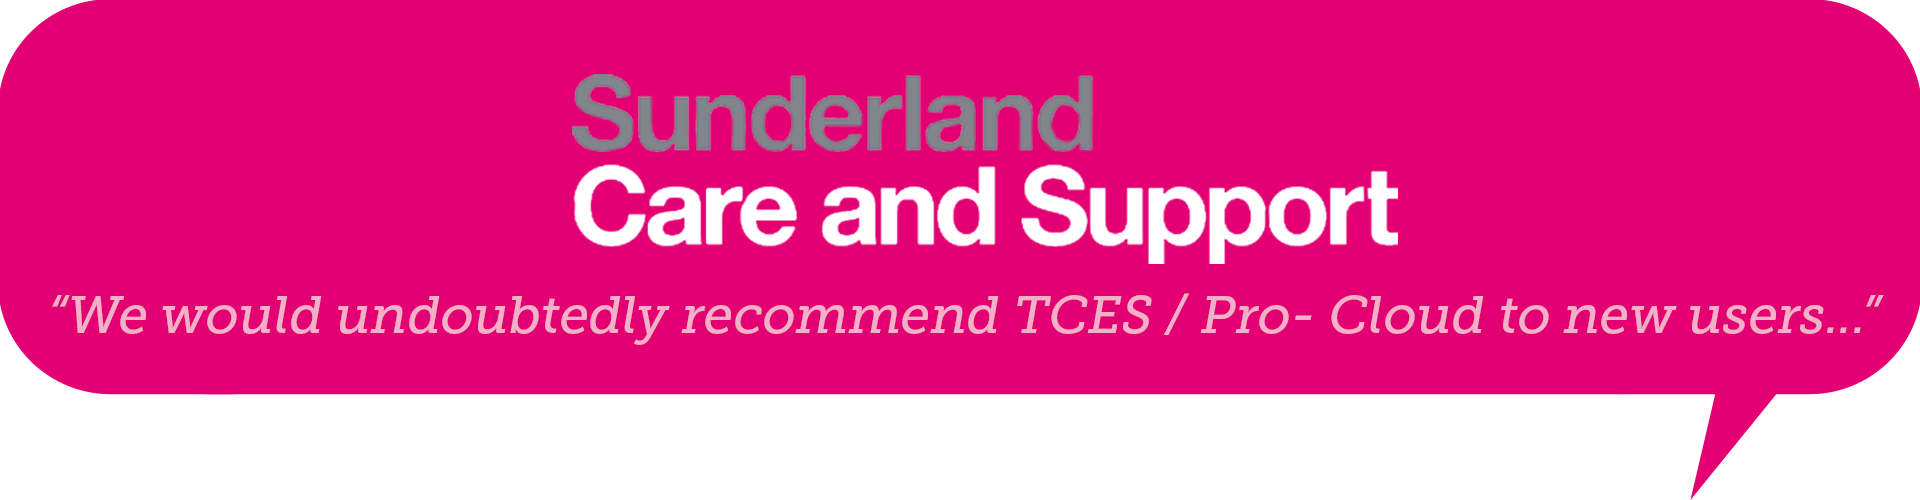 sunderland care and support logo with testimonial excerpt